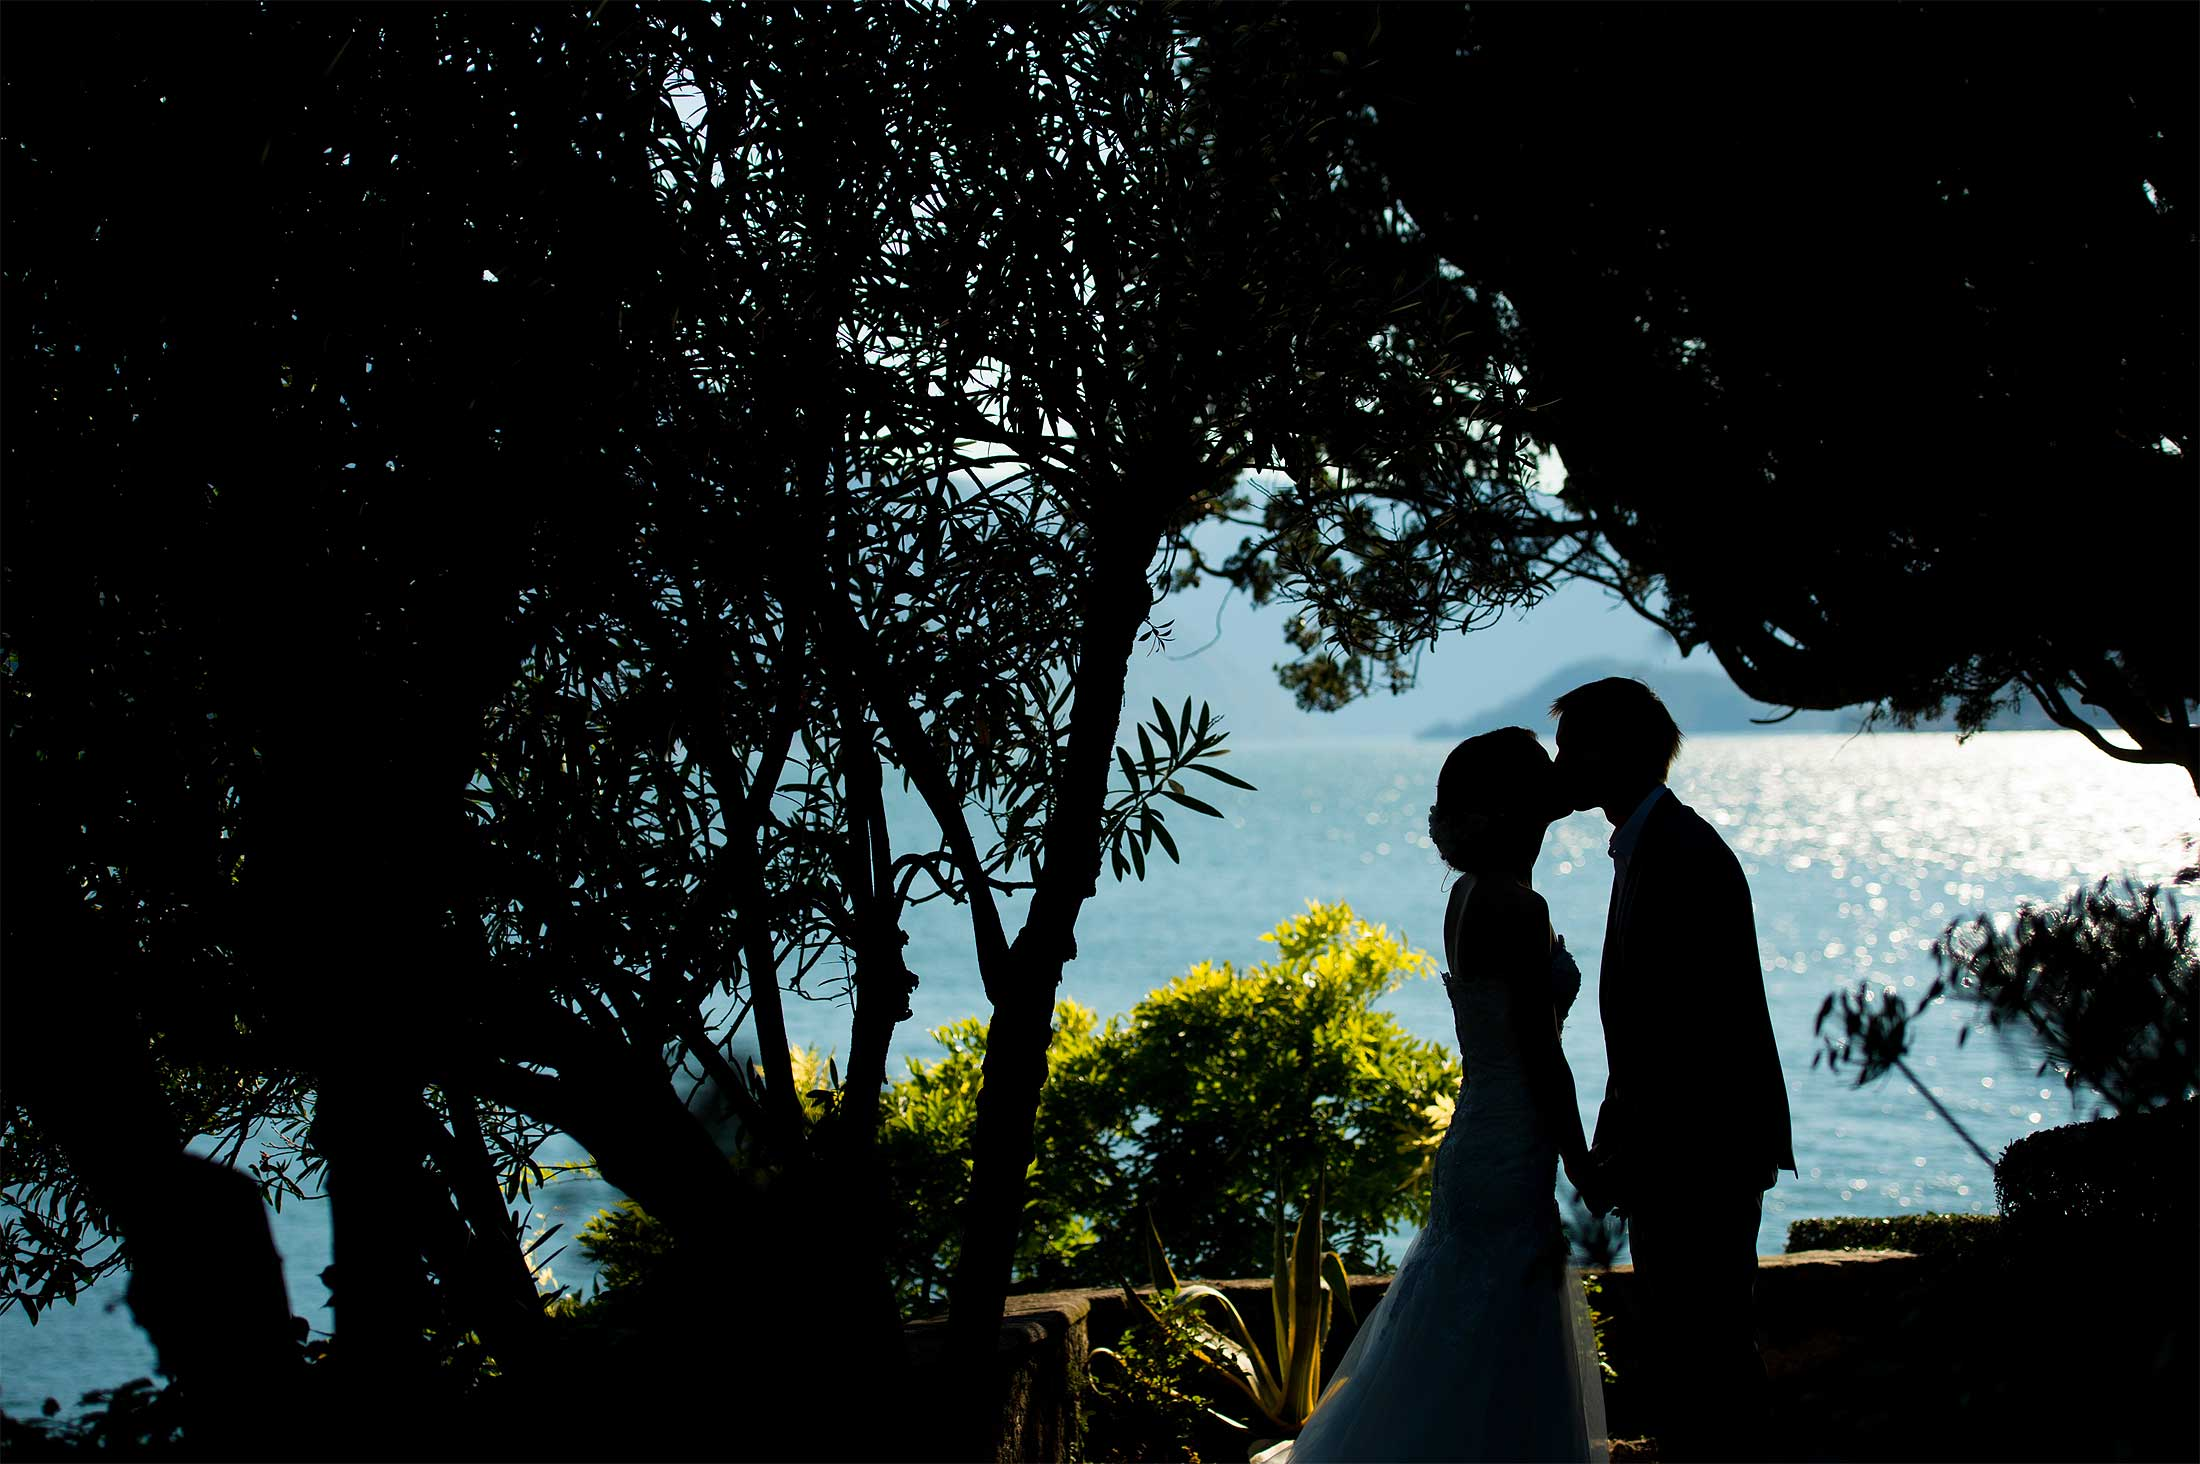 Wedding venue lake Como, Varenna, Villa Cipressi, Lake Como, Italy